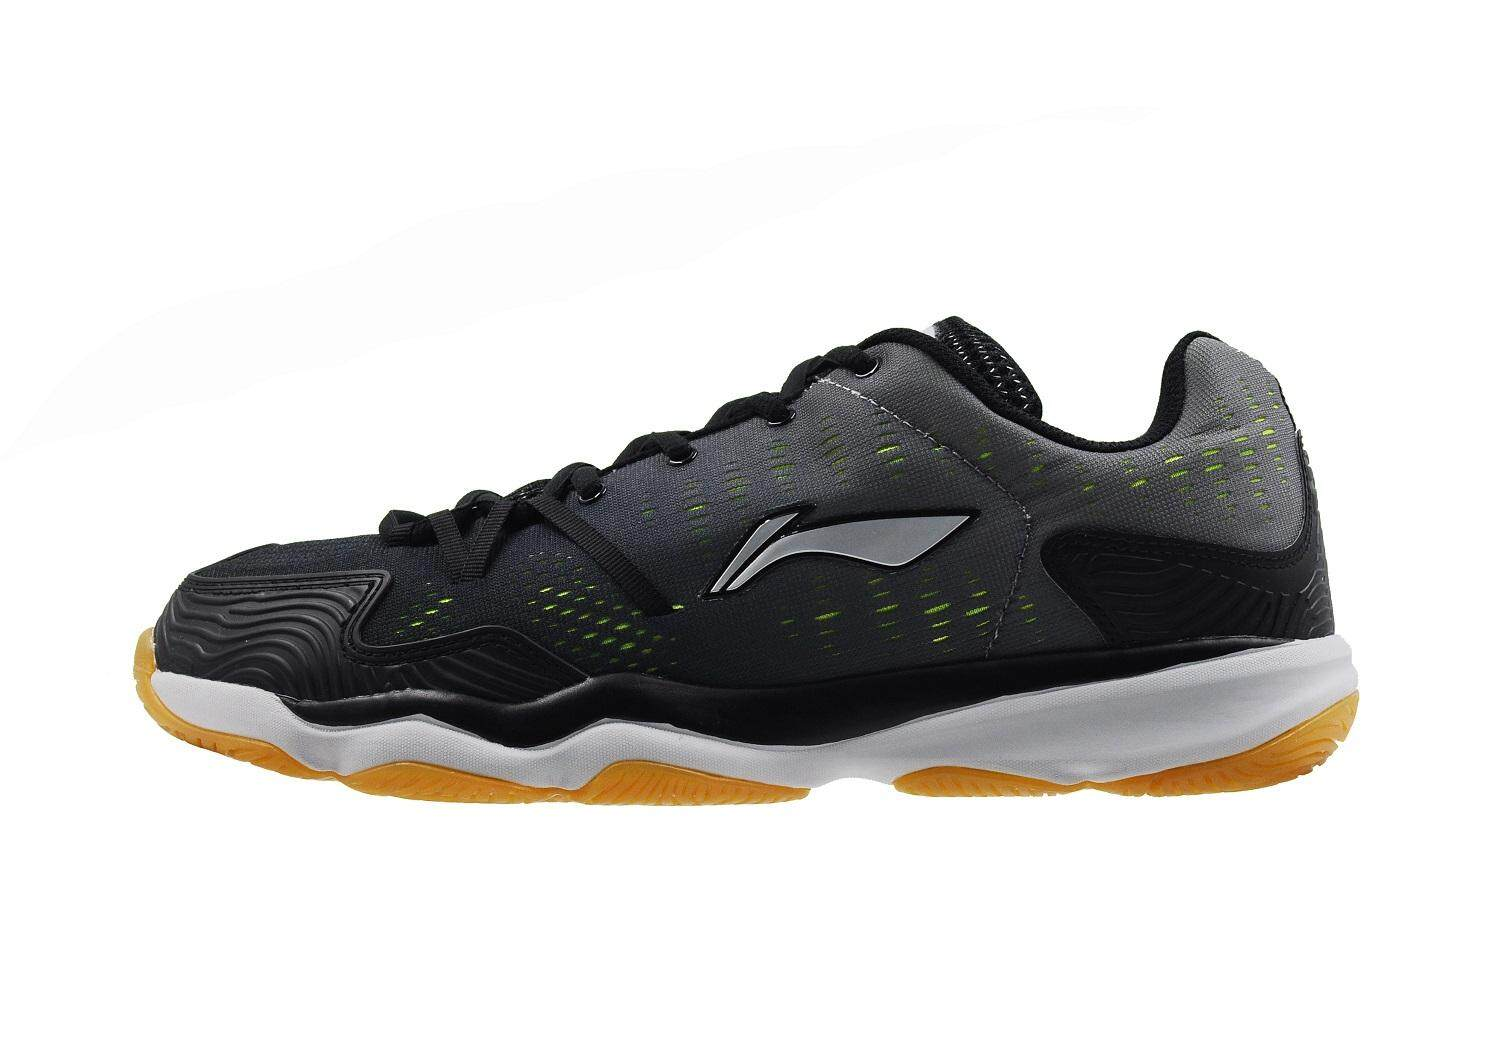 Li-Ning Men's Badminton Shoes AYTM073